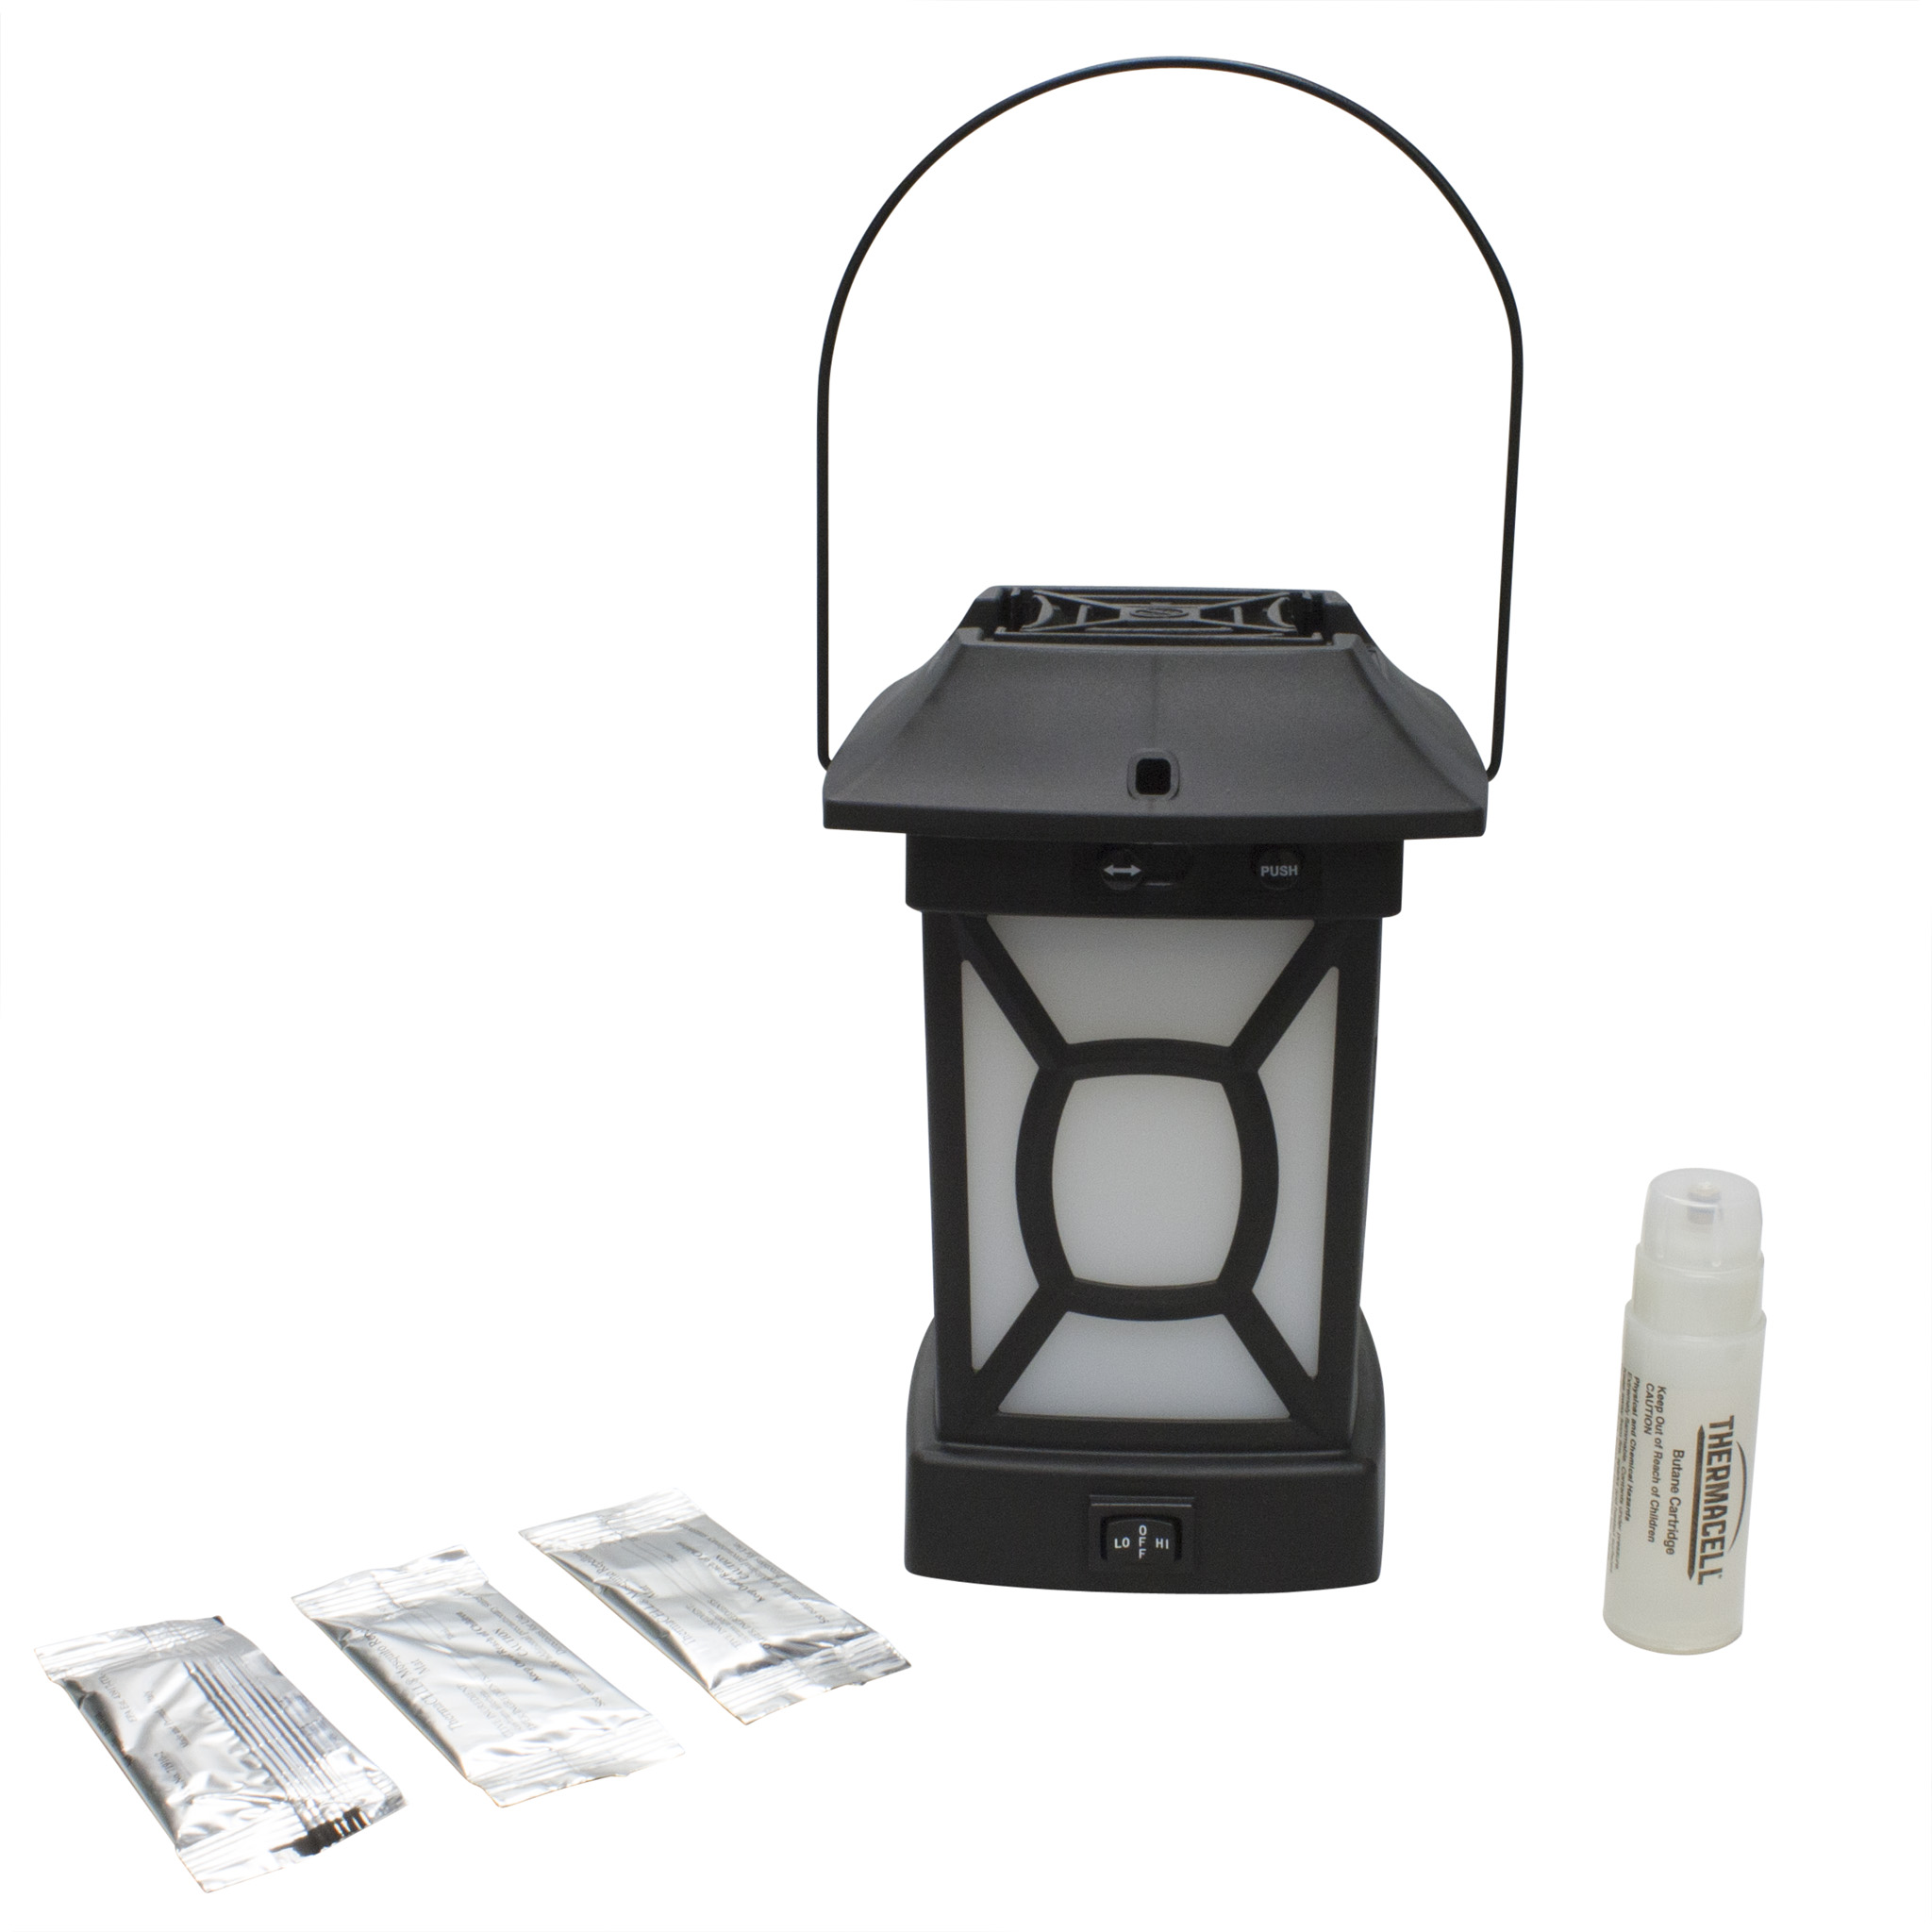 ThermaCELL Mosquito Repellent Patio Lantern (12 Hrs) · Alternate Image 1 ·  Alternate Image 2